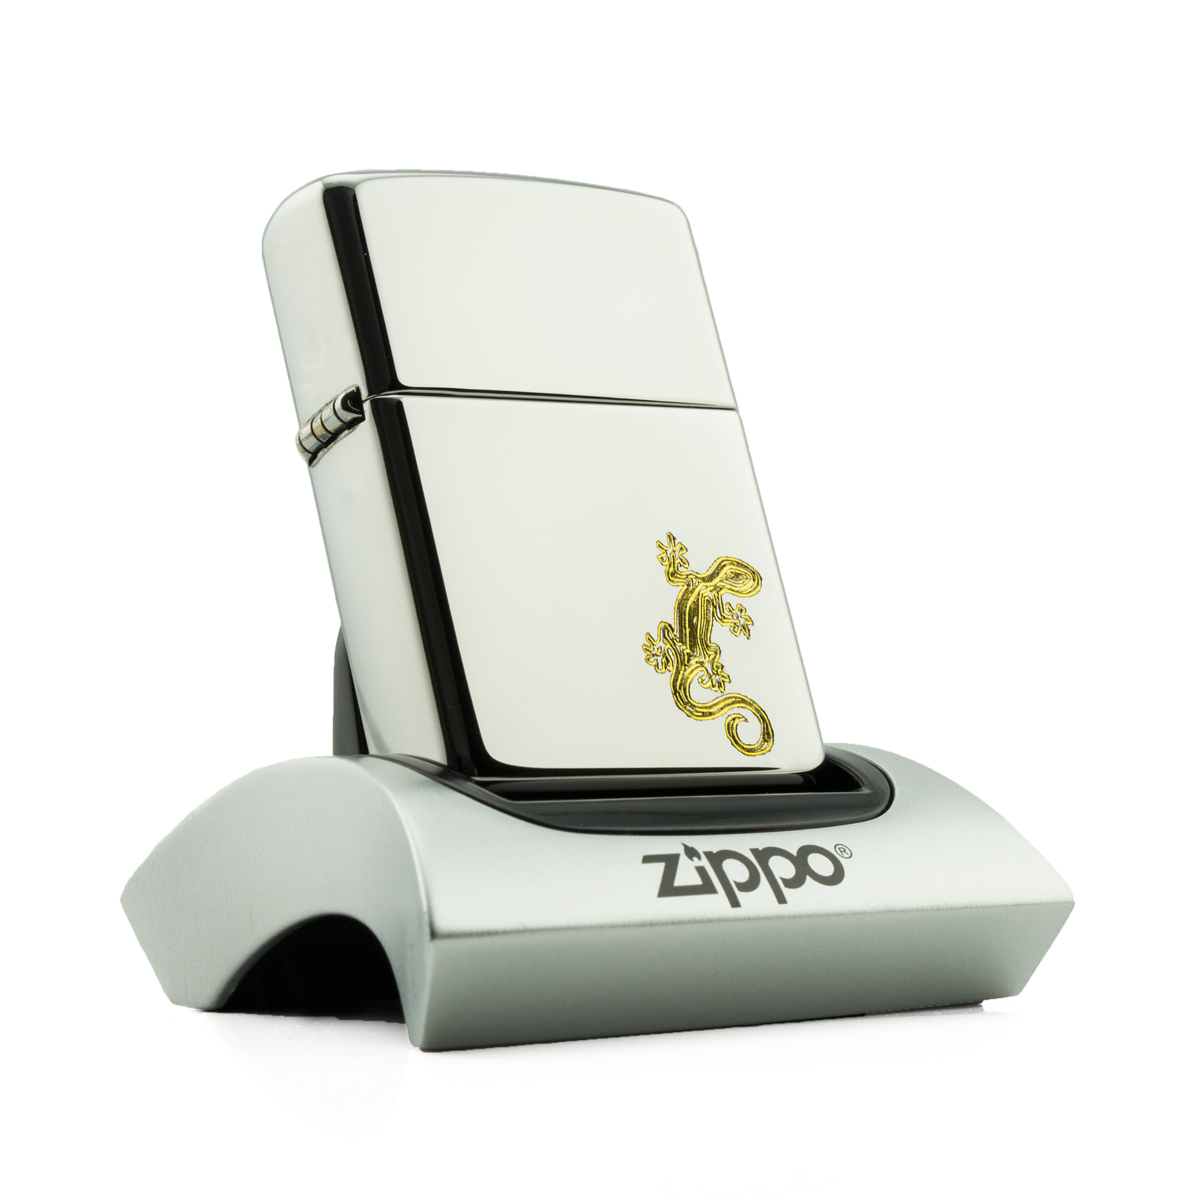 zippo-high-polish-chrome-khac-logo-lizard-than-lan